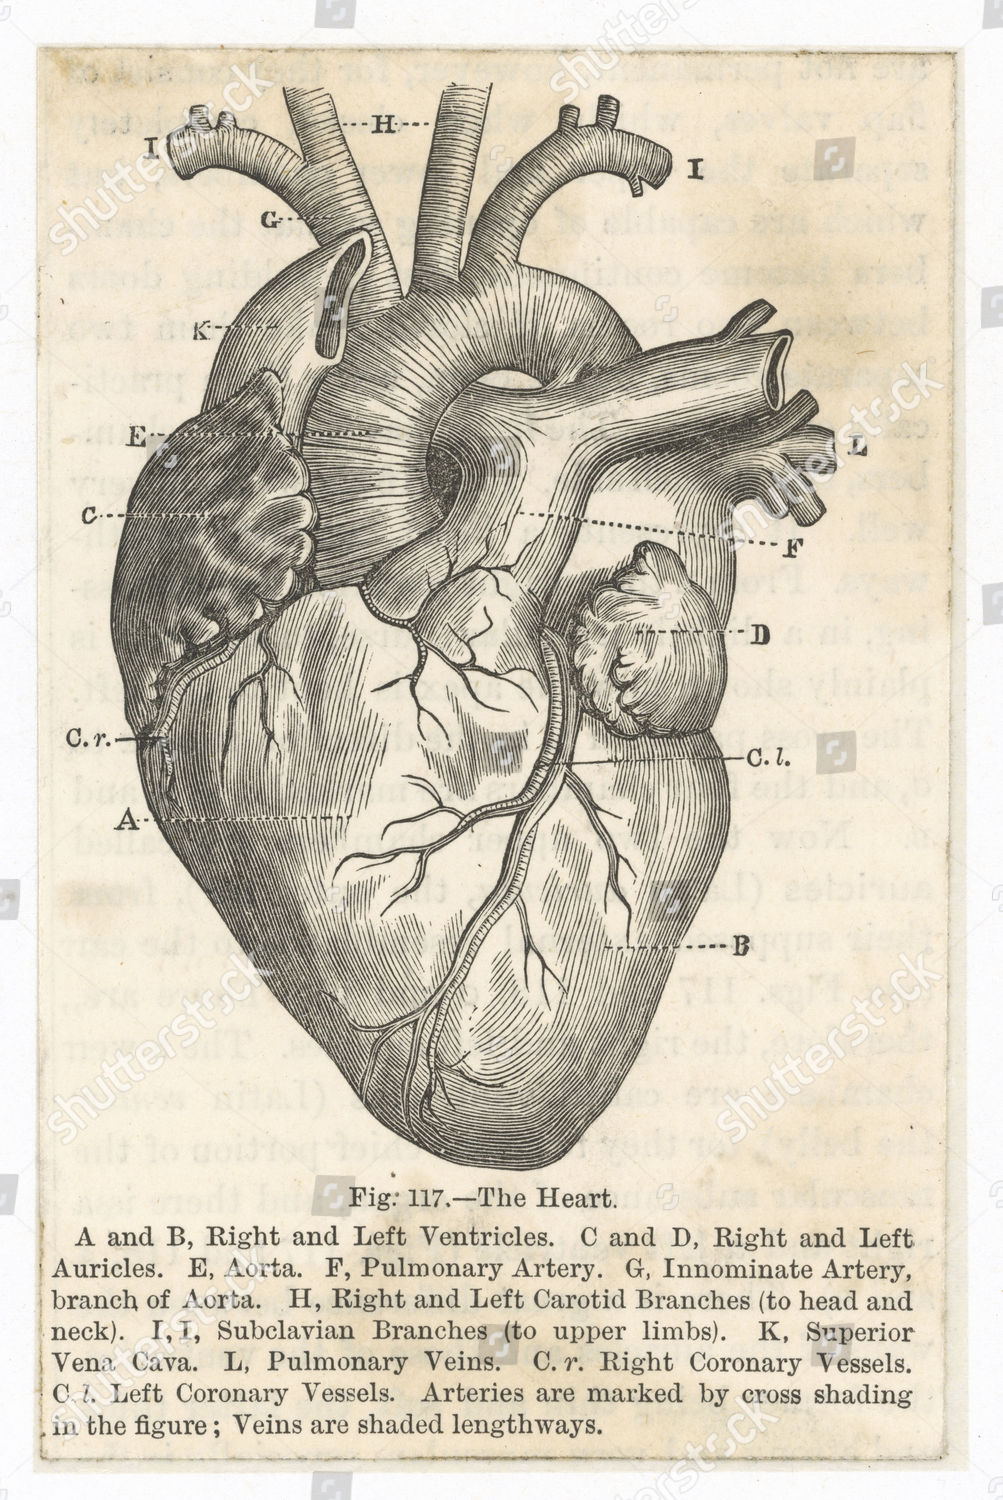 Heart Showing Ventricles Auricles Aorta Arteries Carotid Editorial